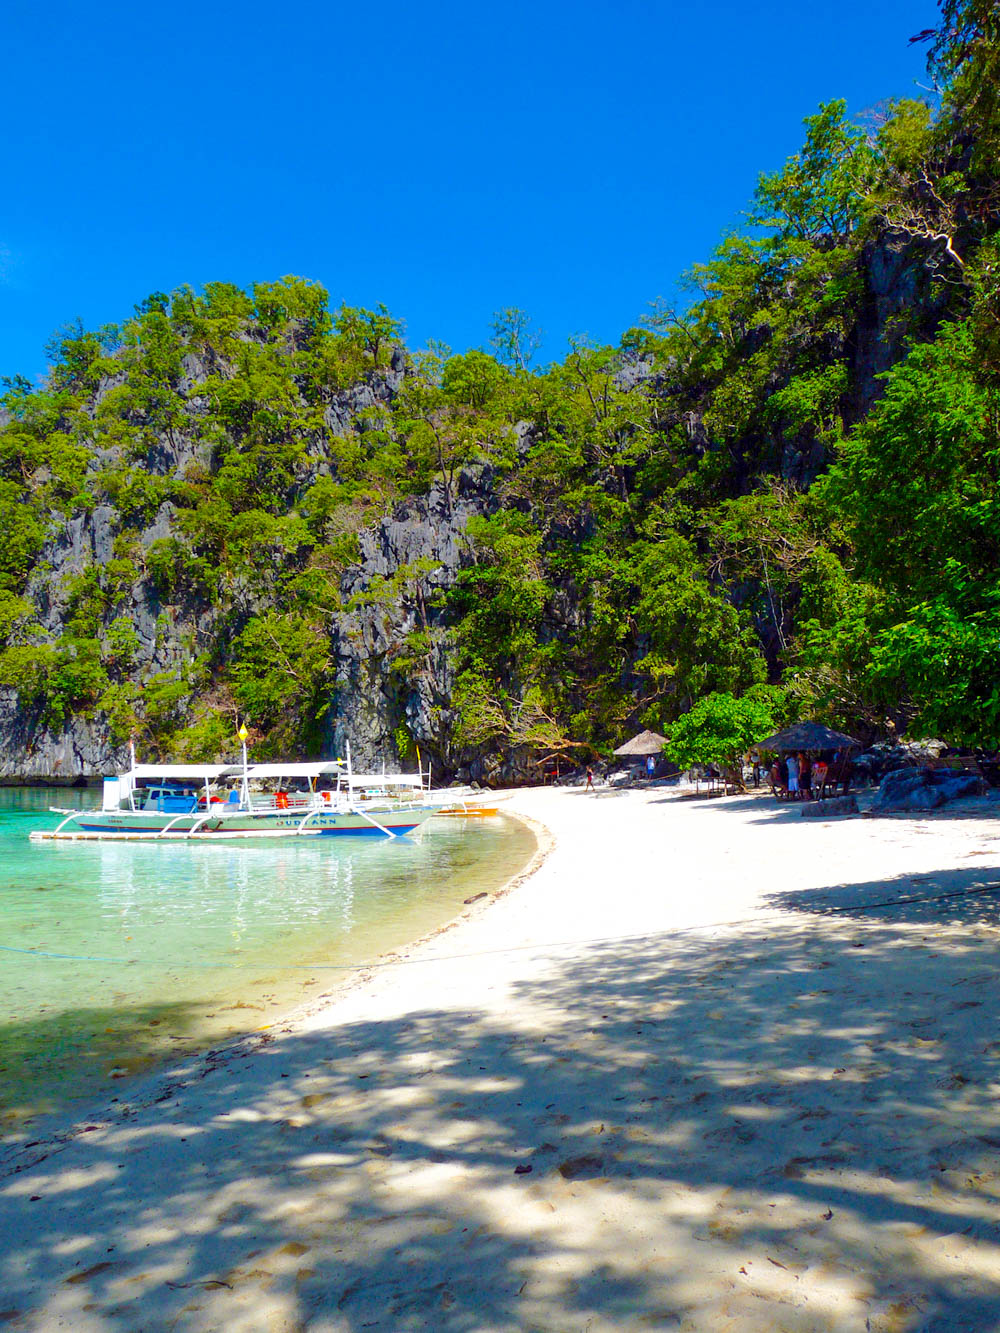 Outrigger boat near a white sand beach backed by limestone cliffs overhung with vegetation in Coron, Philippines